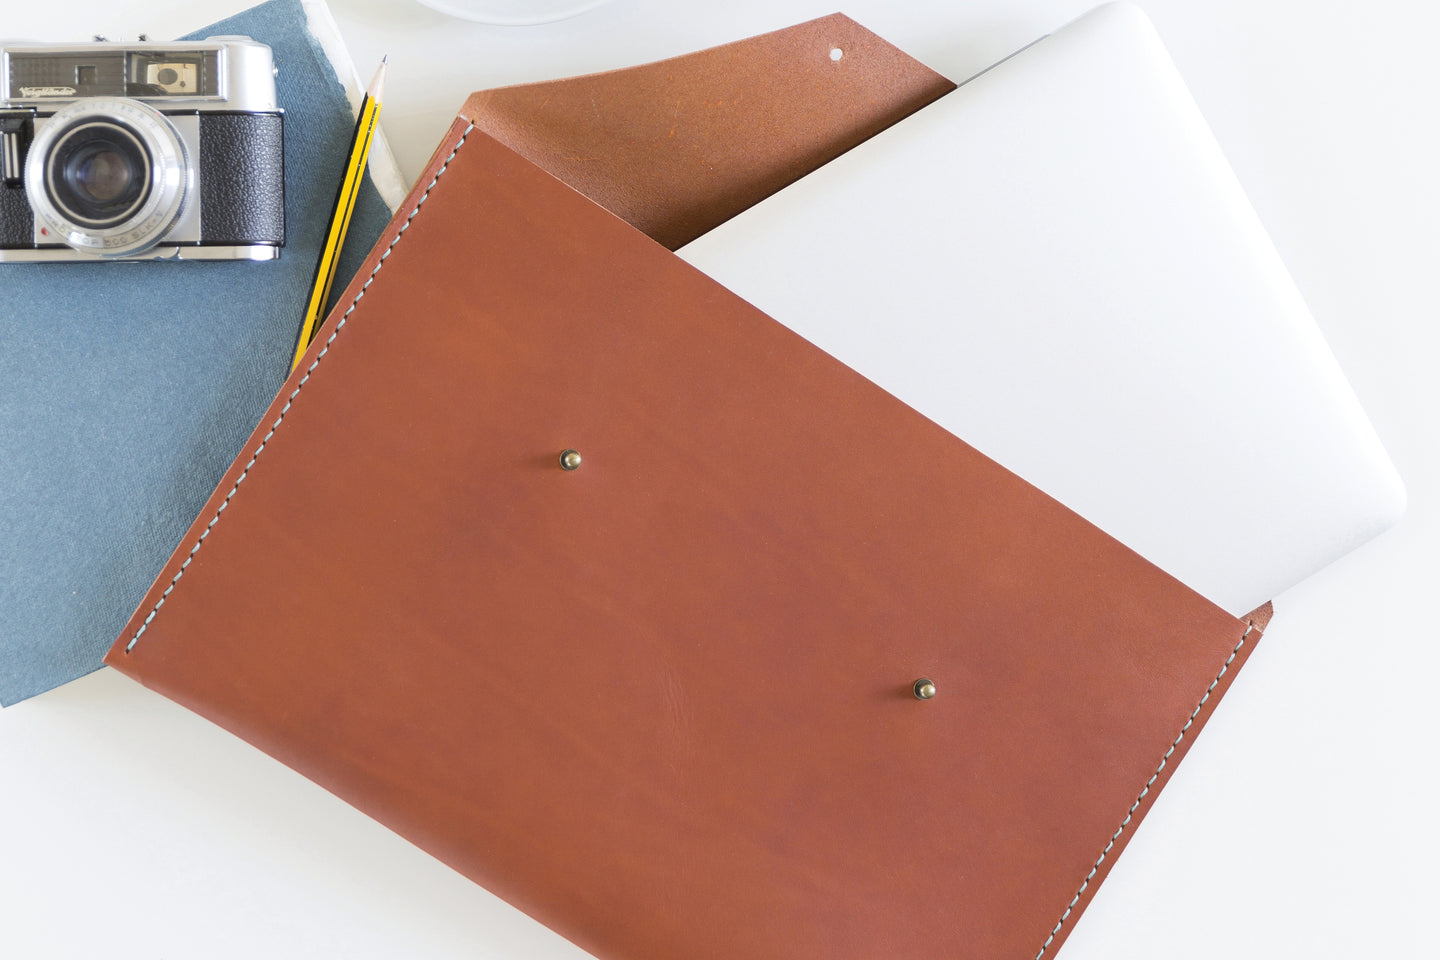 Learn to hand stitch a leather laptop case